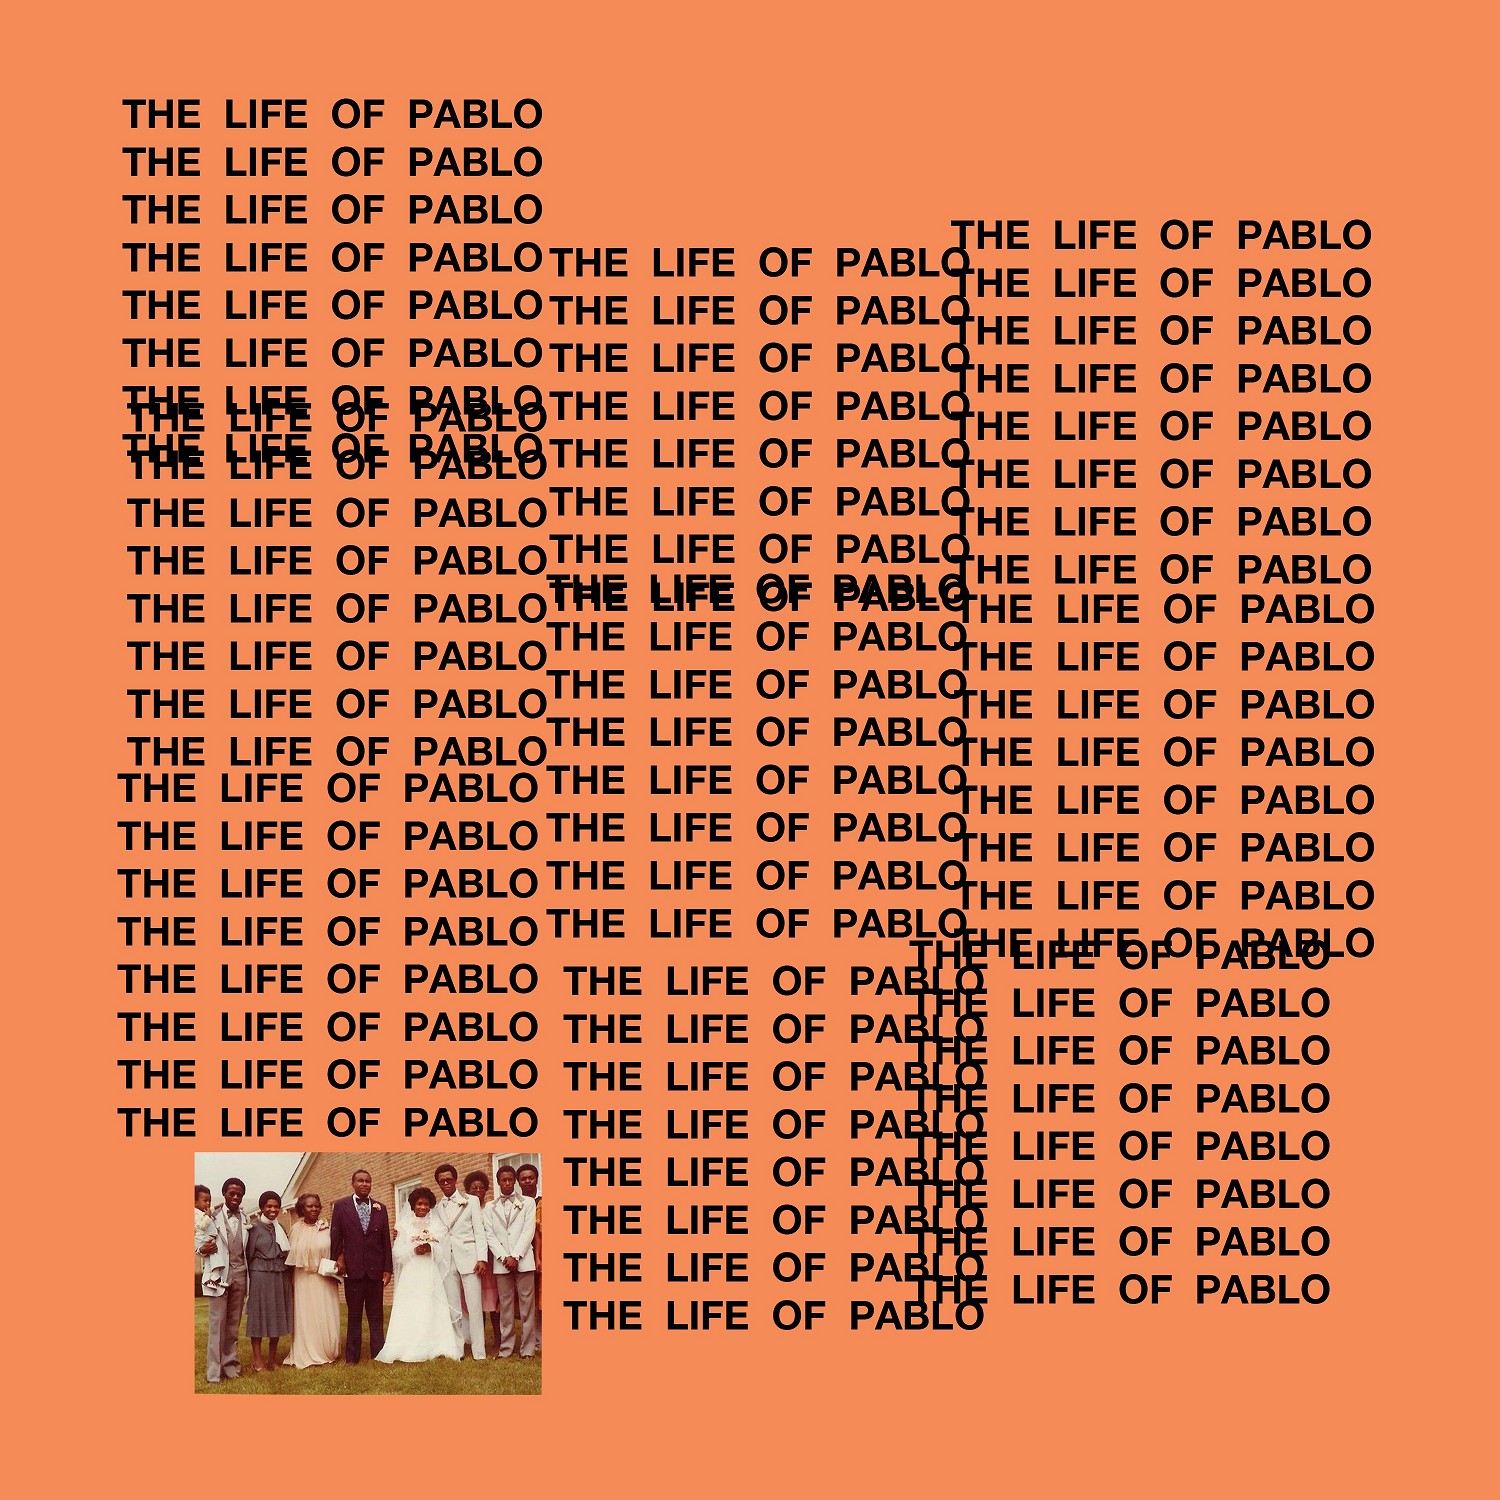 THE-LIFE-OF-PABLO-COVER